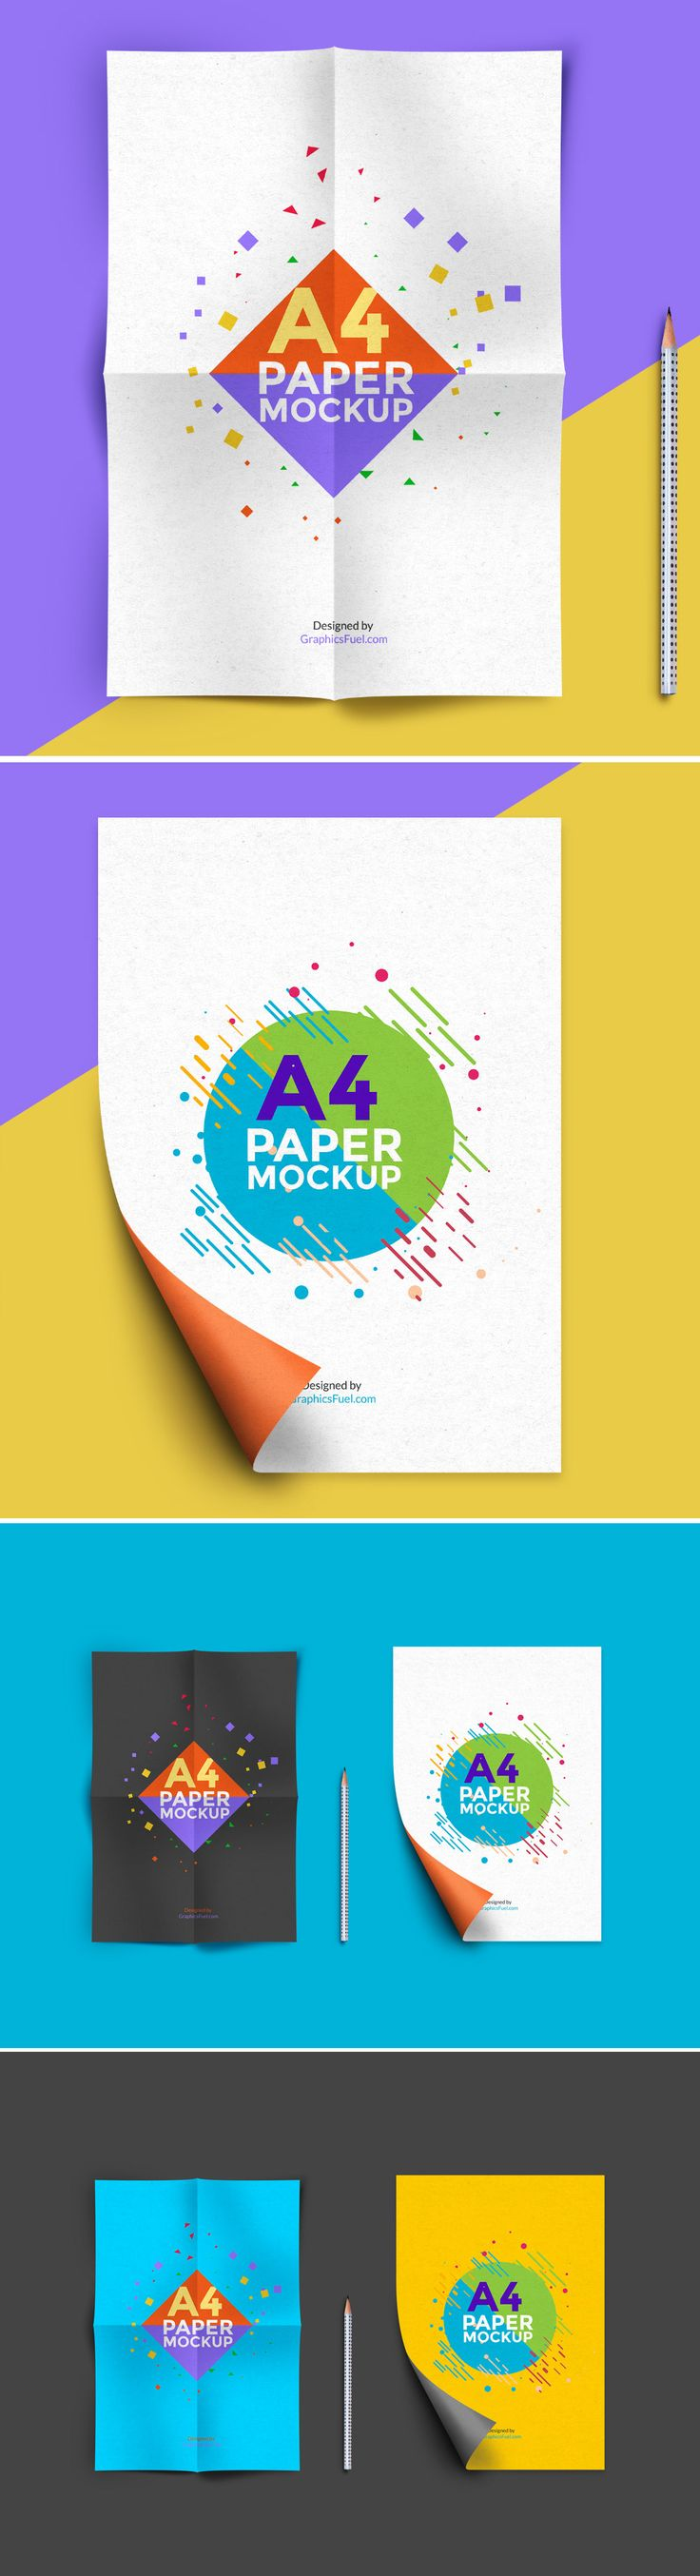 Free A4 Paper Mockup PSD (24.1 MB) | Graphics Fuel | #free #photoshop #mockup #psd #a4 #paper